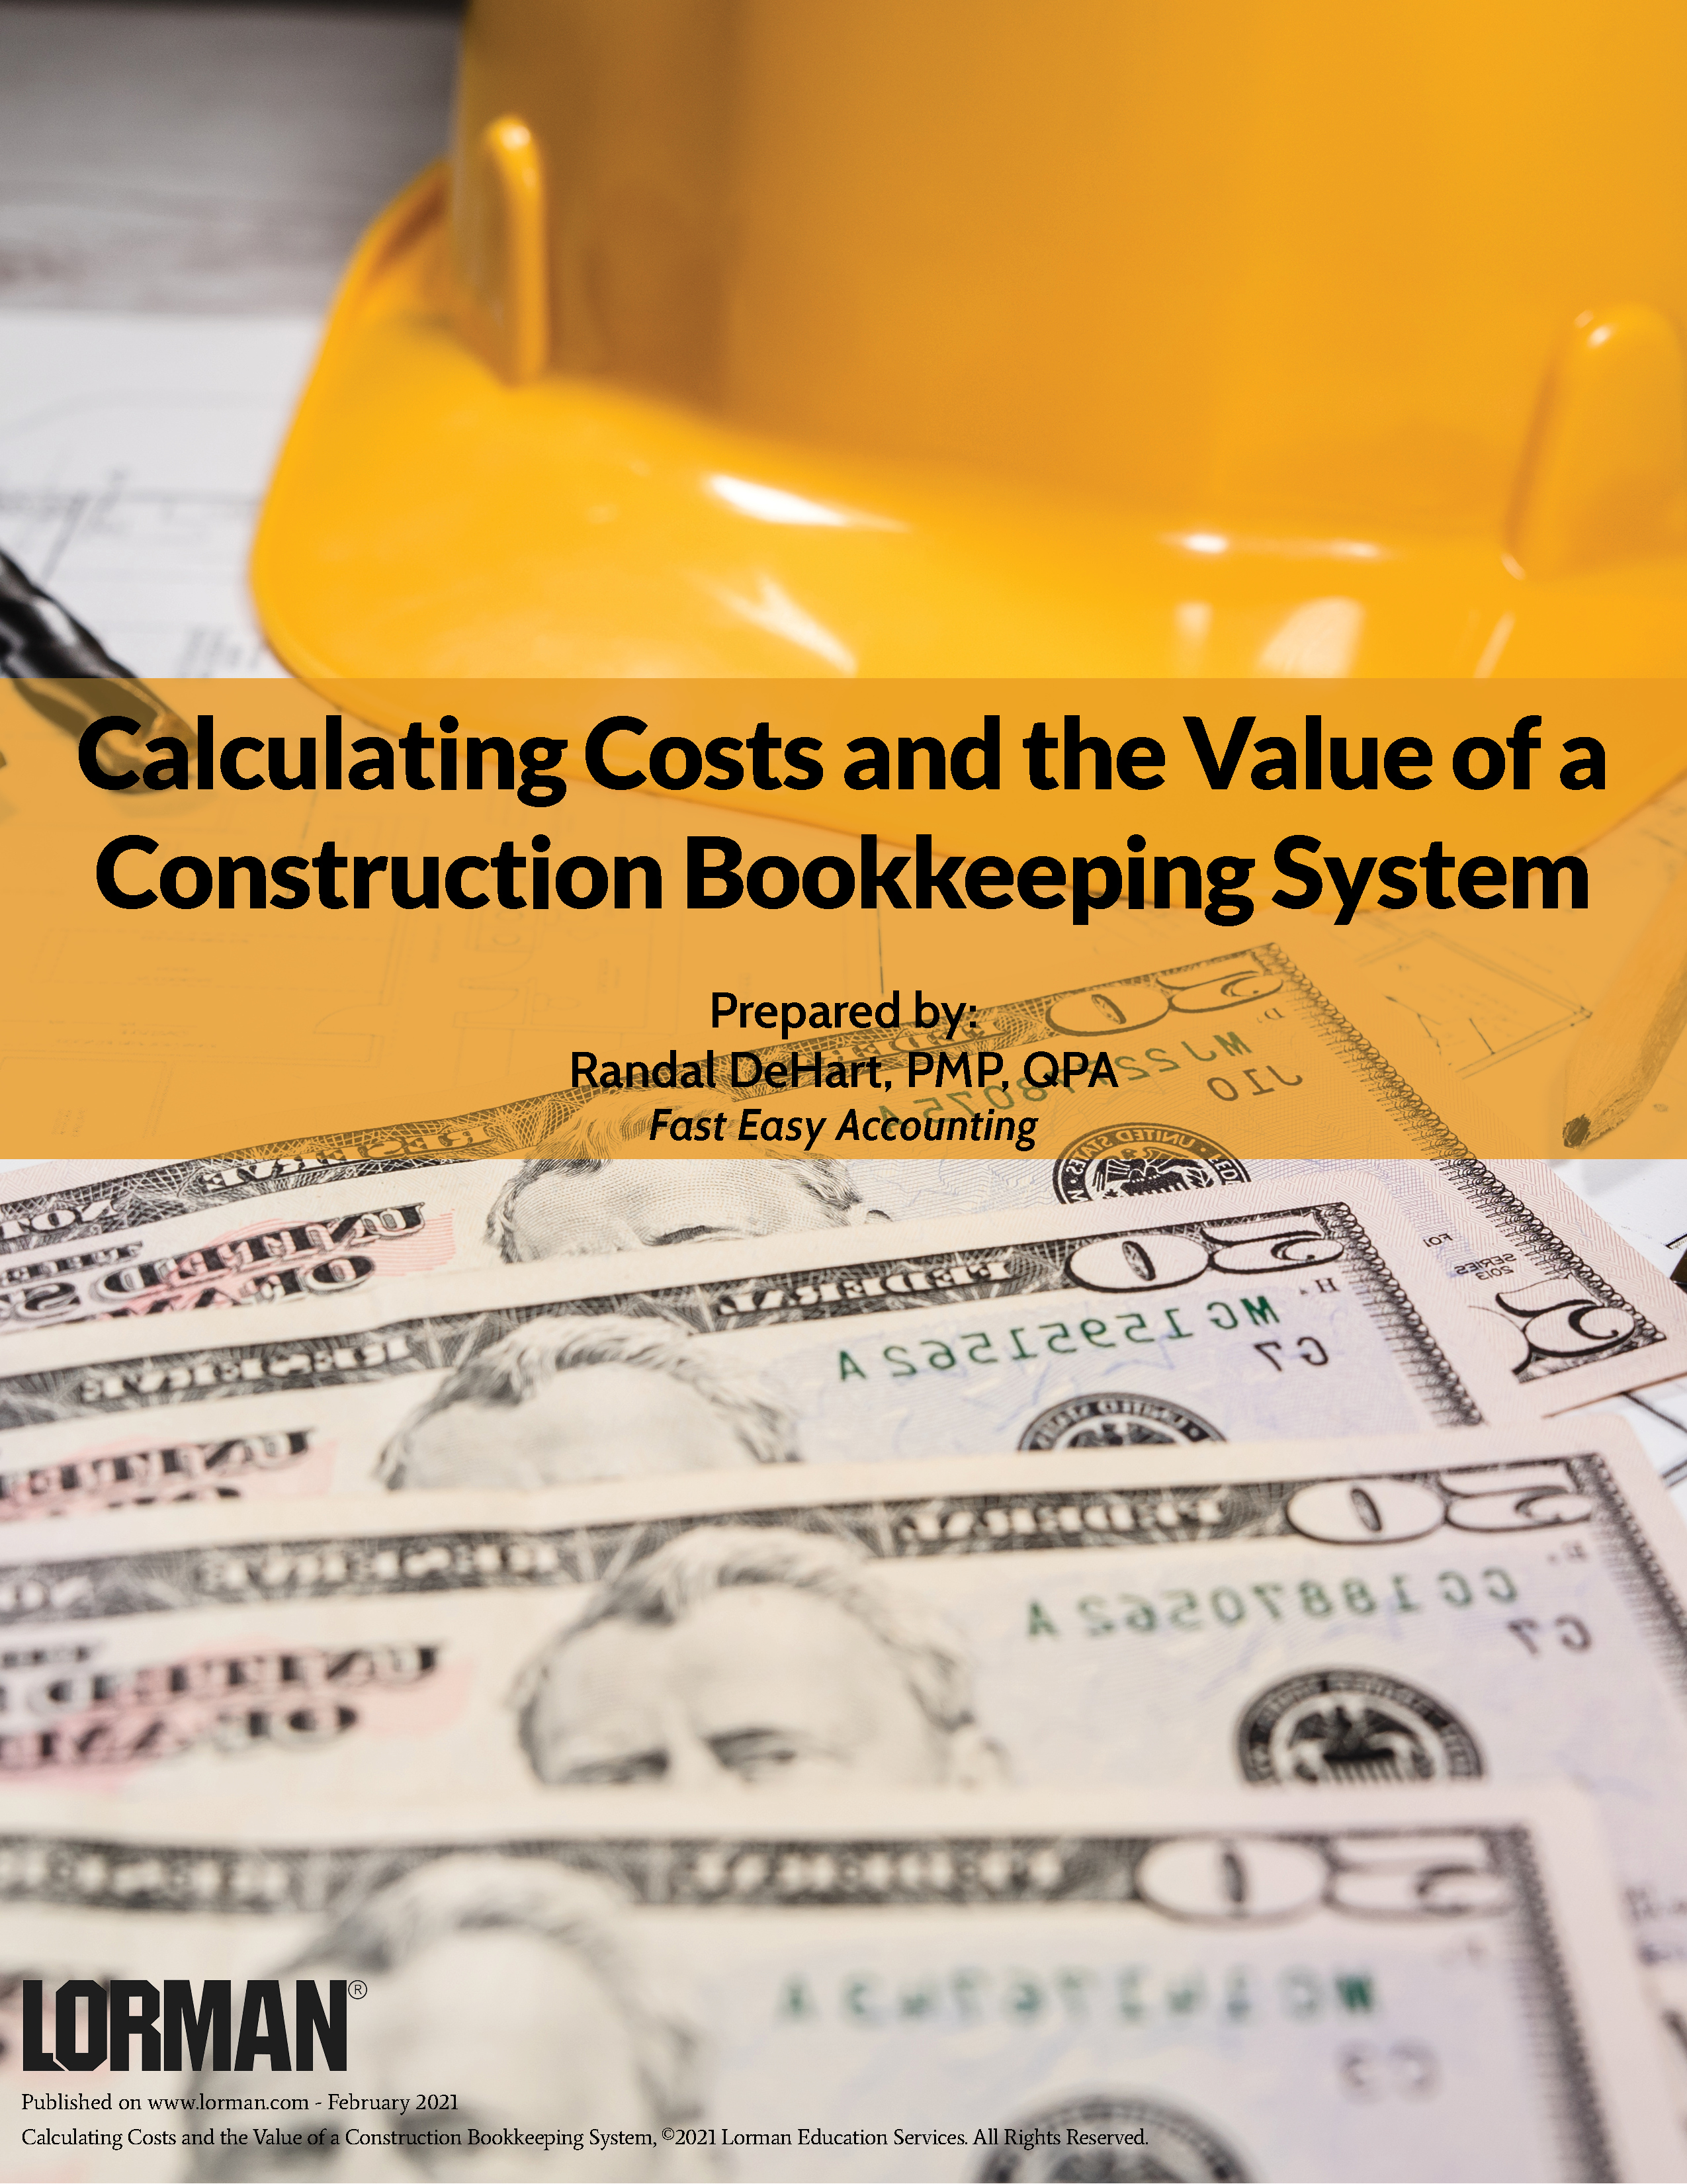 Calculating Costs and the Value of a Construction Bookkeeping System